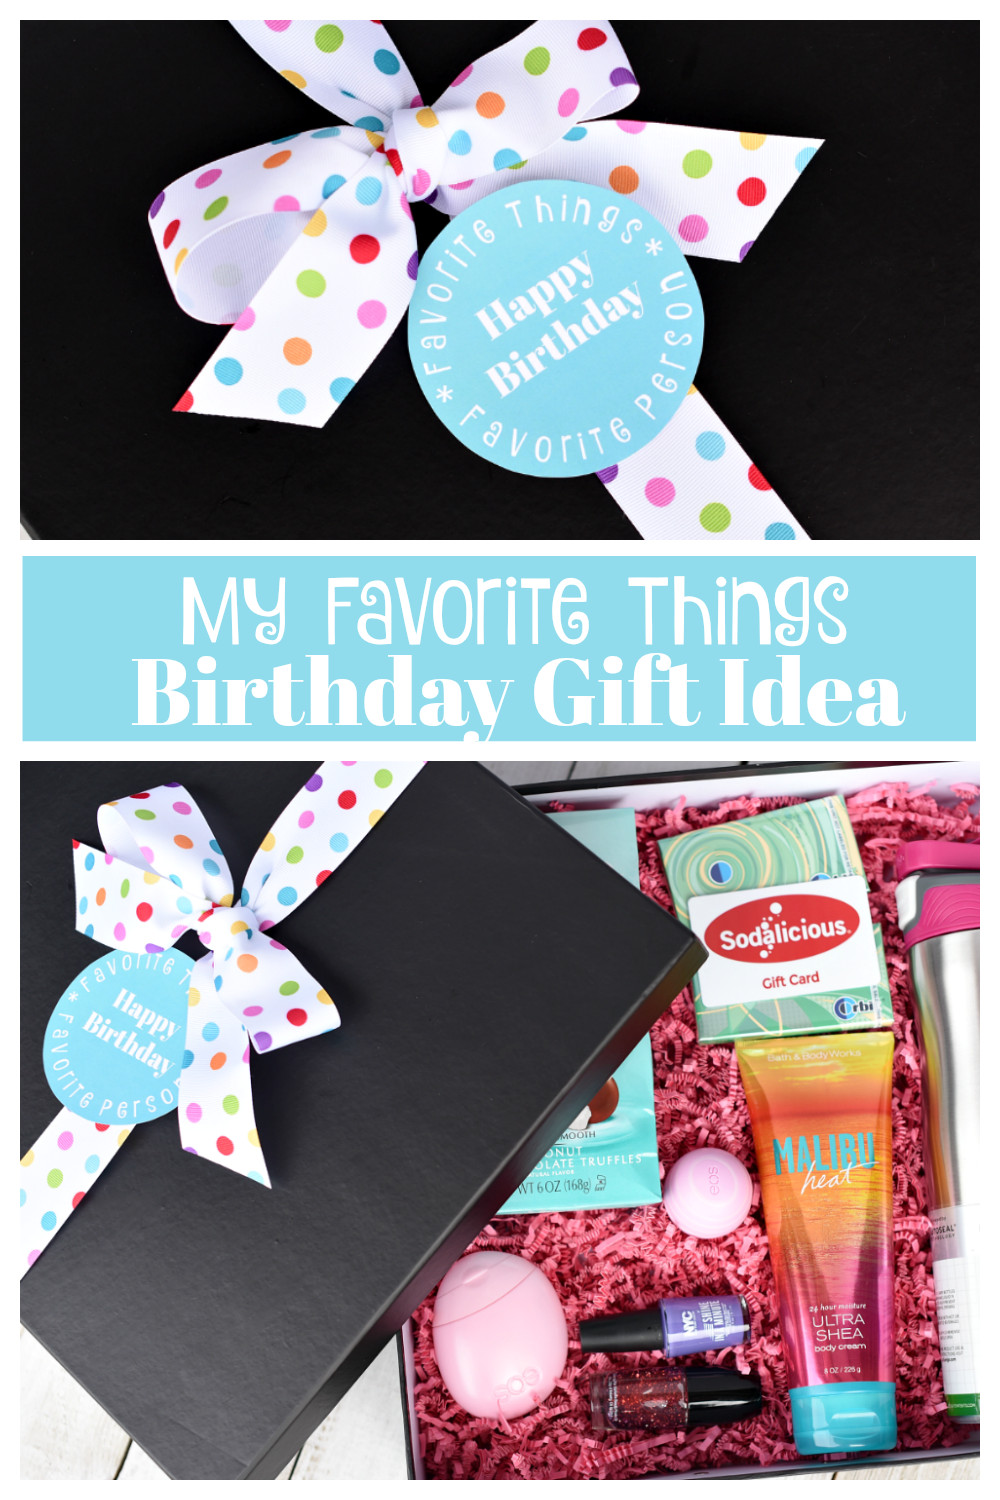 Best Friend Birthday Gift Ideas  My Favorite Things Birthday Gifts for Your Best Friend